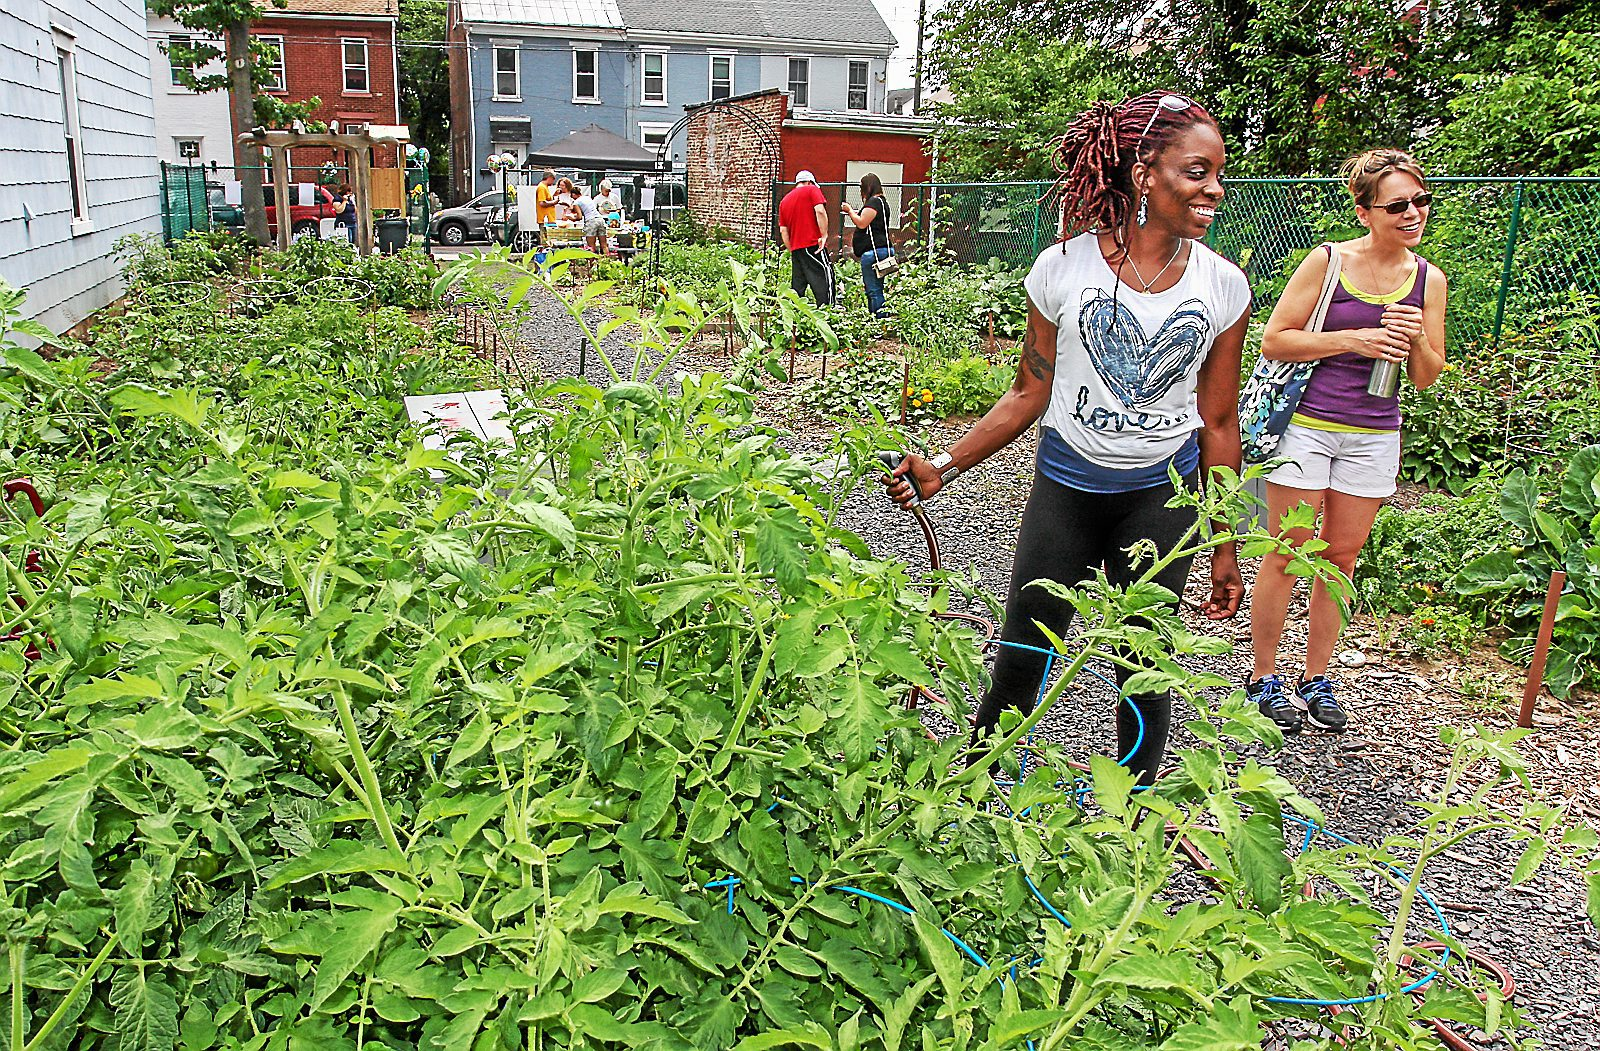 Eat fresh at Saturdays community garden party in Pottstown Fit